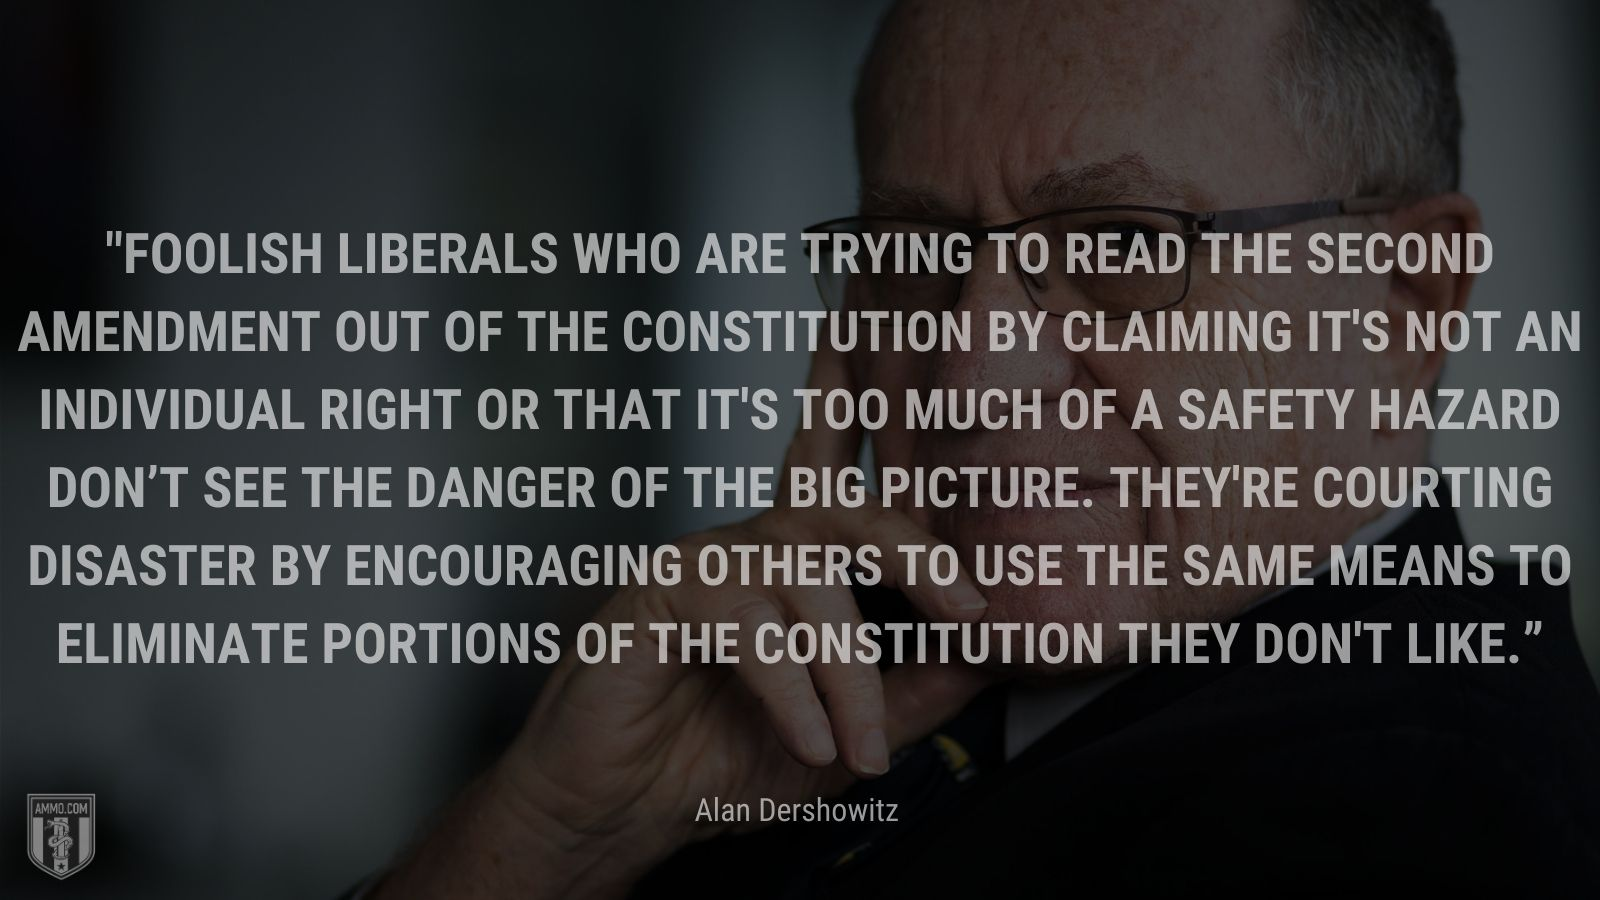 """""""Foolish liberals who are trying to read the Second Amendment out of the Constitution by claiming it's not an individual right or that it's too much of a safety hazard don't see the danger of the big picture. They're courting disaster by encouraging others to use the same means to eliminate portions of the Constitution they don't like."""" - Alan Dershowitz"""